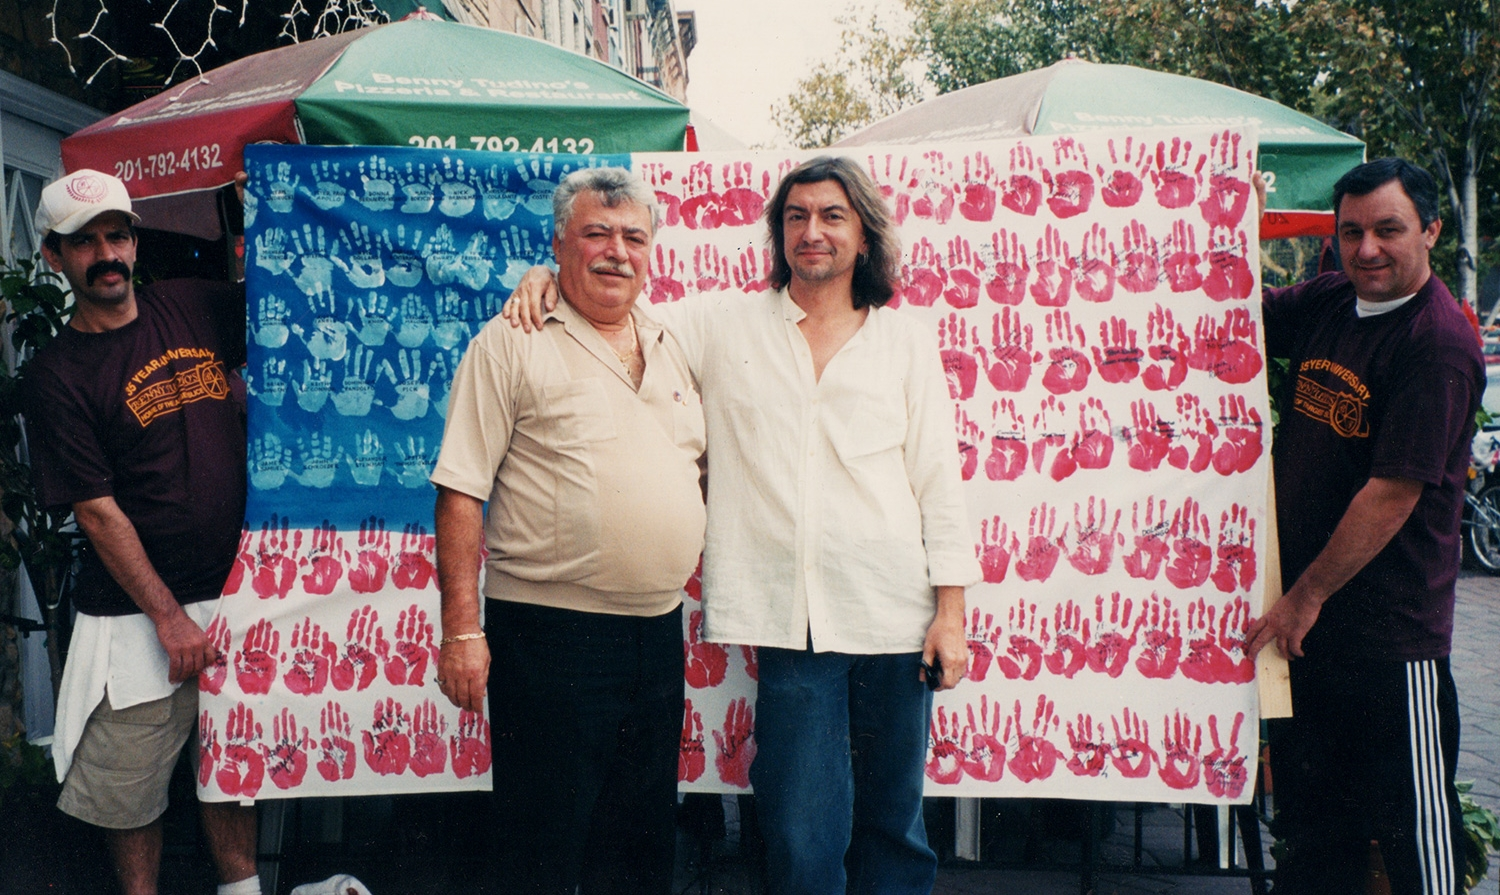 Benny Tudino and I with the second handprint flag I made and sent to Rome, Georgia as a thank-you for the one they sent to Hoboken.